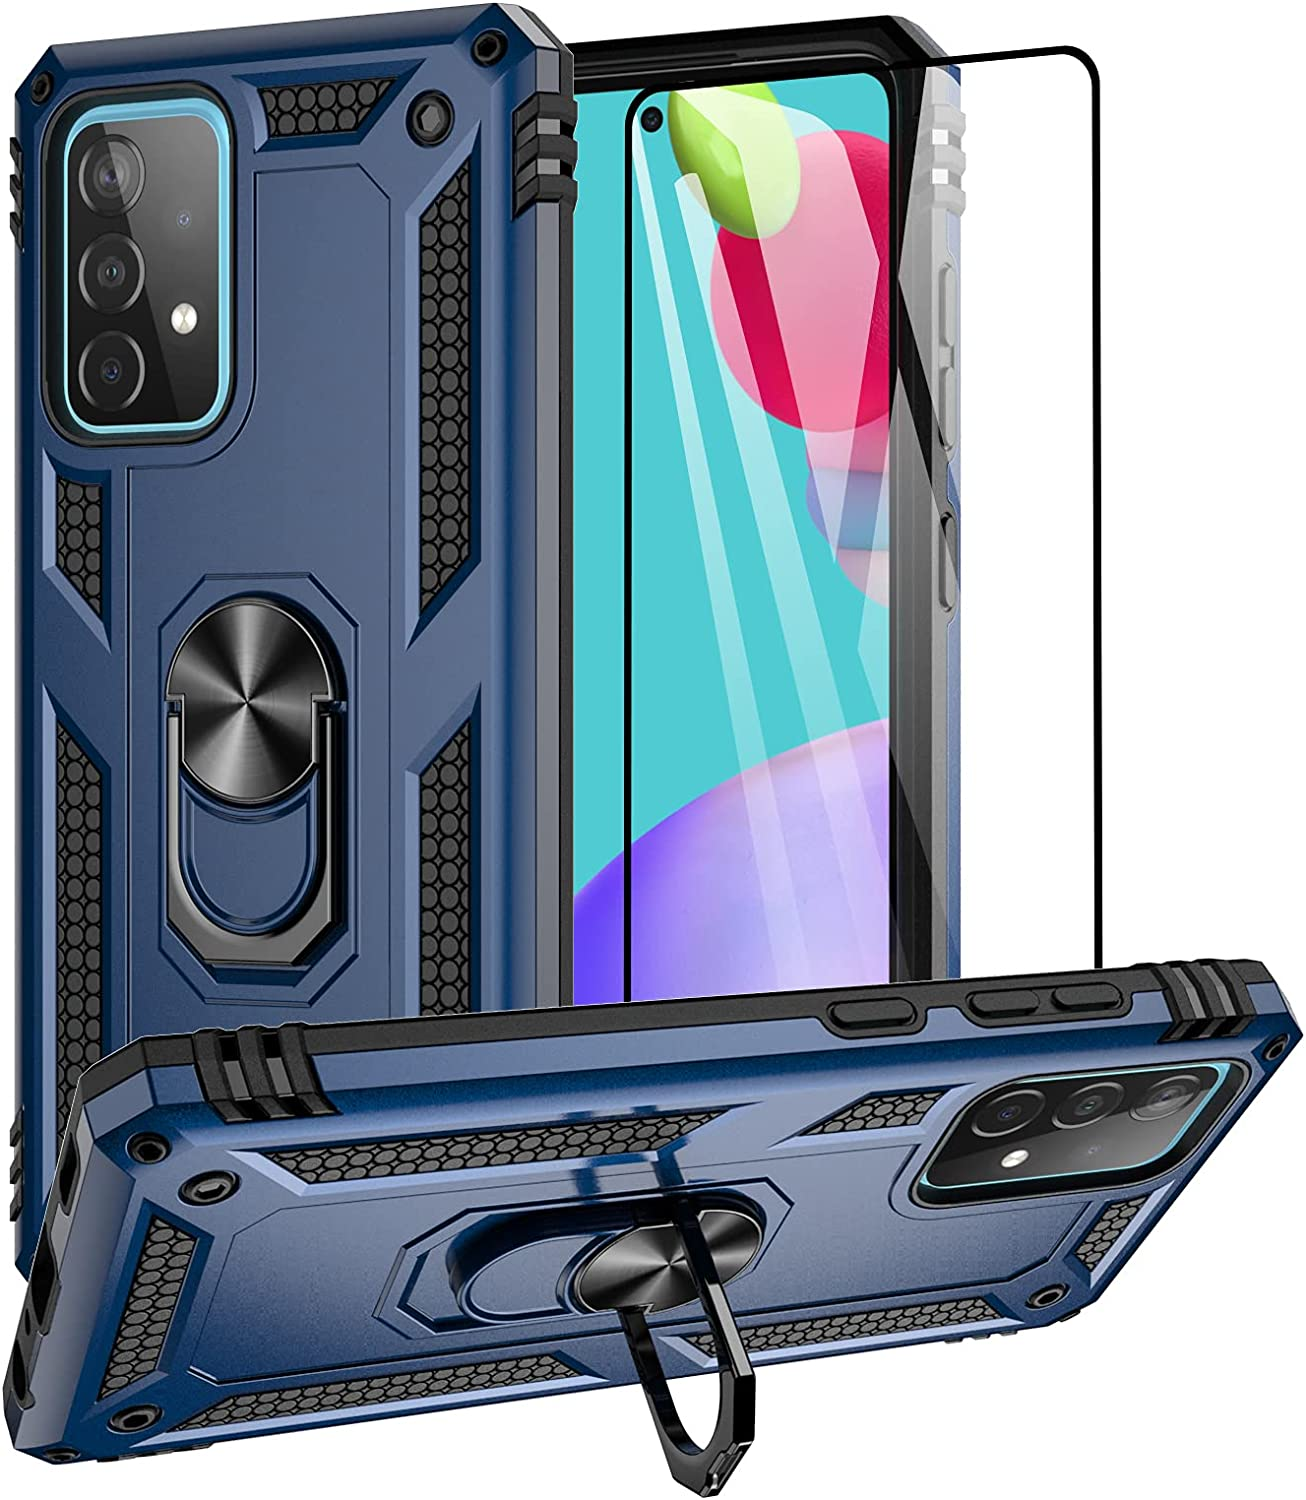 Aliruke Case Compatible for Samsung Galaxy A52 5G Case with Tempered Glass Screen Protector and Ring Holder Kickstand,Military Grade Cover Magnetic Finger Loop Stand Phone Cases for Galaxy A52, Blue